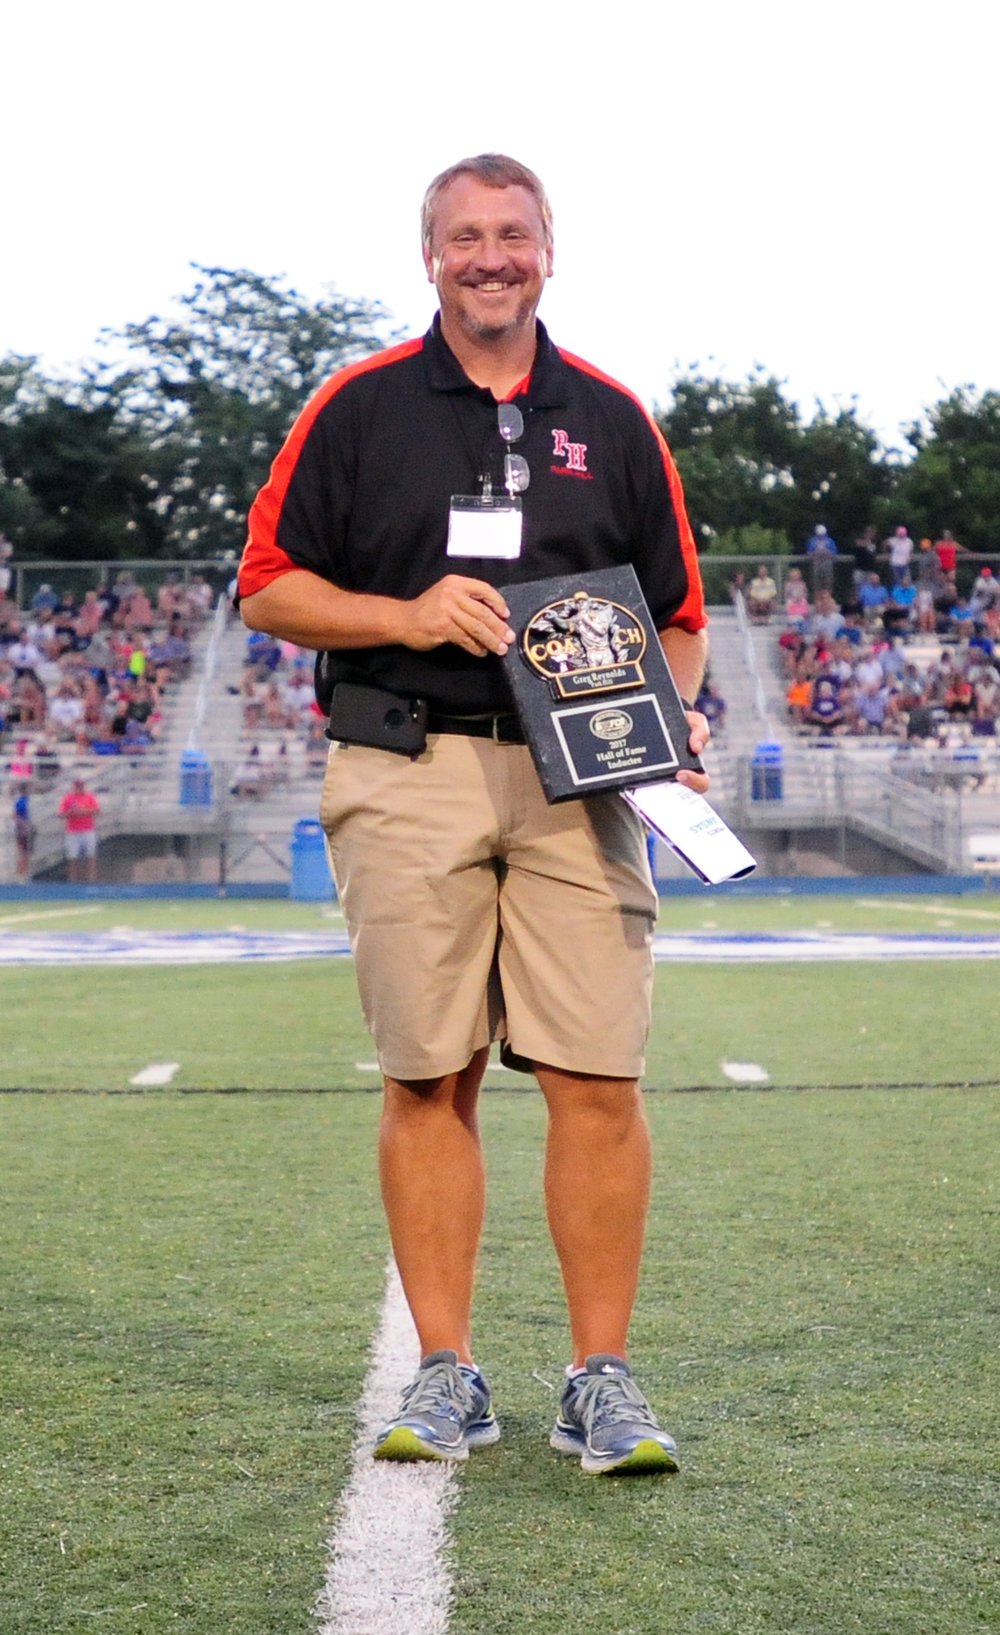 NICK INGRAM/Citizen photo The Greater Kansas City Football Coaches Association inducted former Park Hill coach Greg Reynolds into its hall of fame on Thursday, June 15 at halftime of the annual Missouri-Kansas All-Star Game held at Blue Springs South High School in Blue Springs, Mo. Reynolds led the Trojans to the 2003 Class 5 state championship.